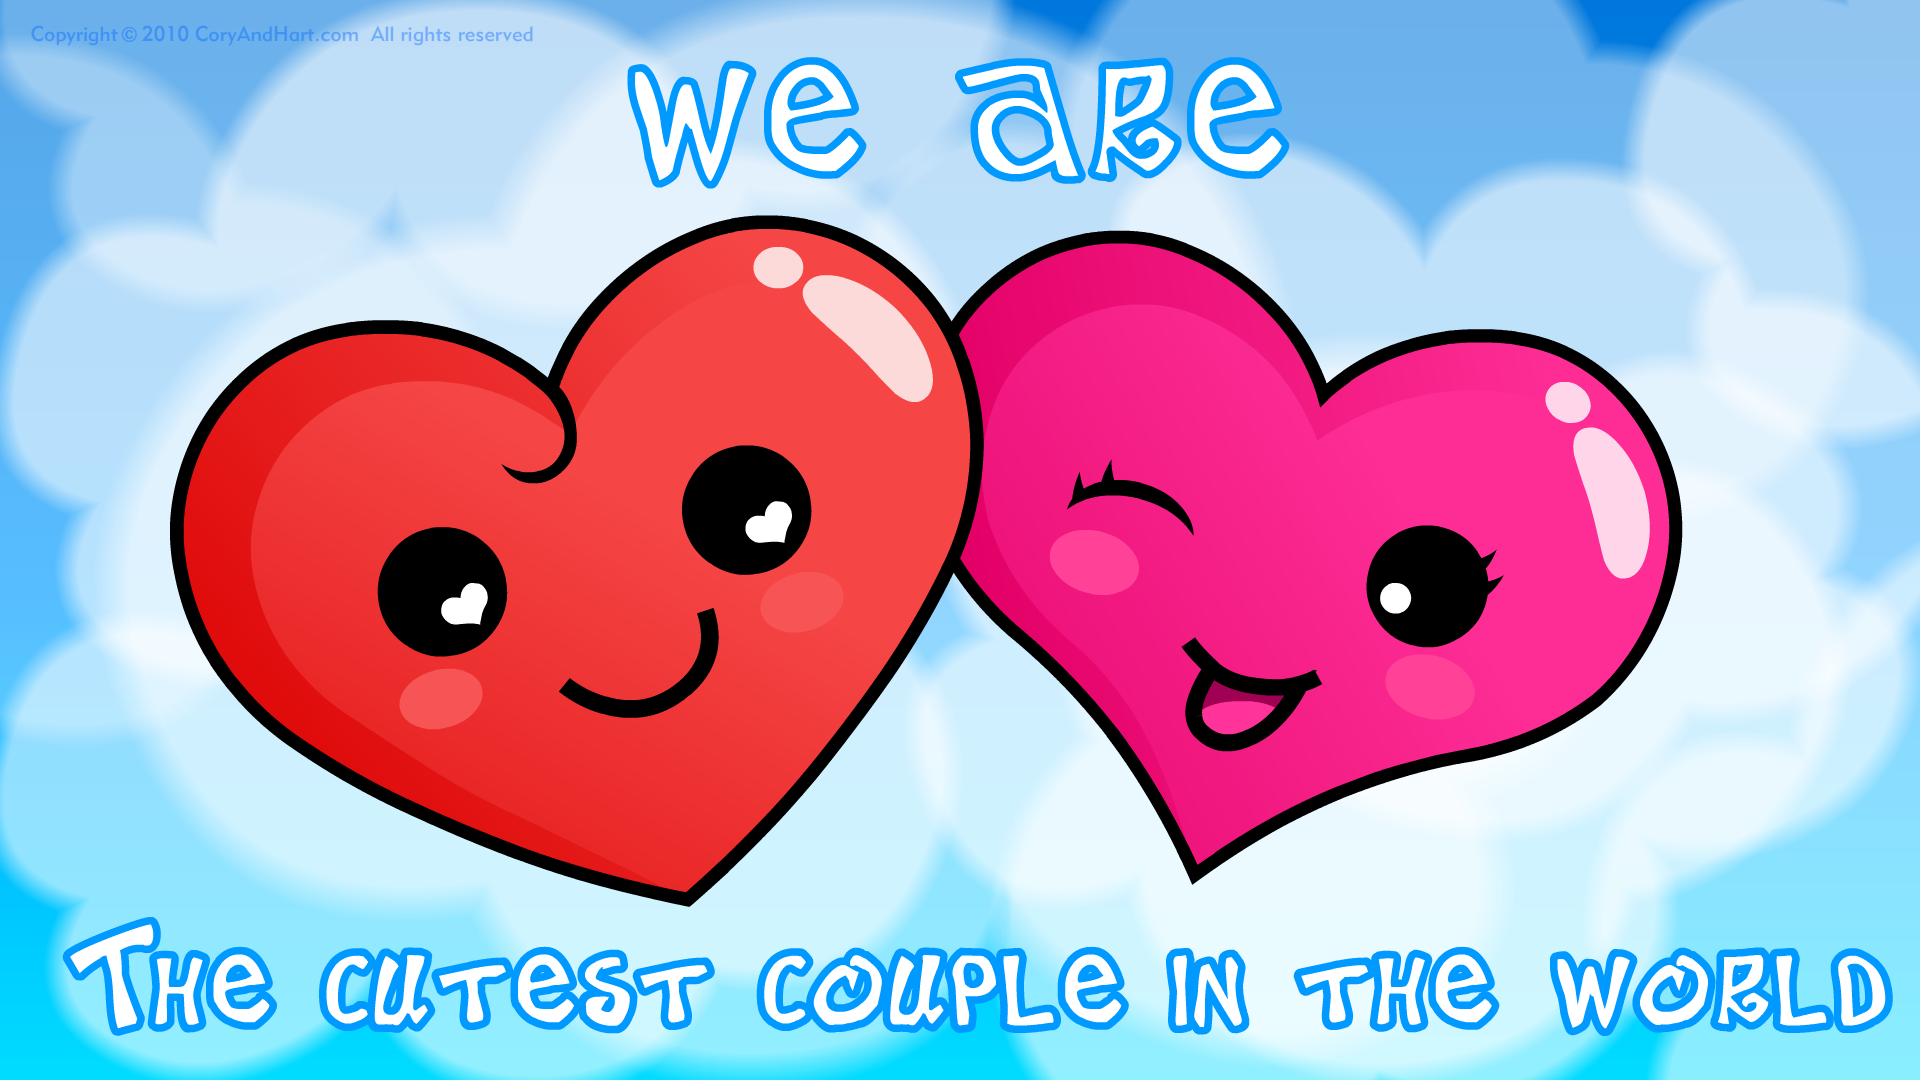 The cutest couple in the world 1920x1080